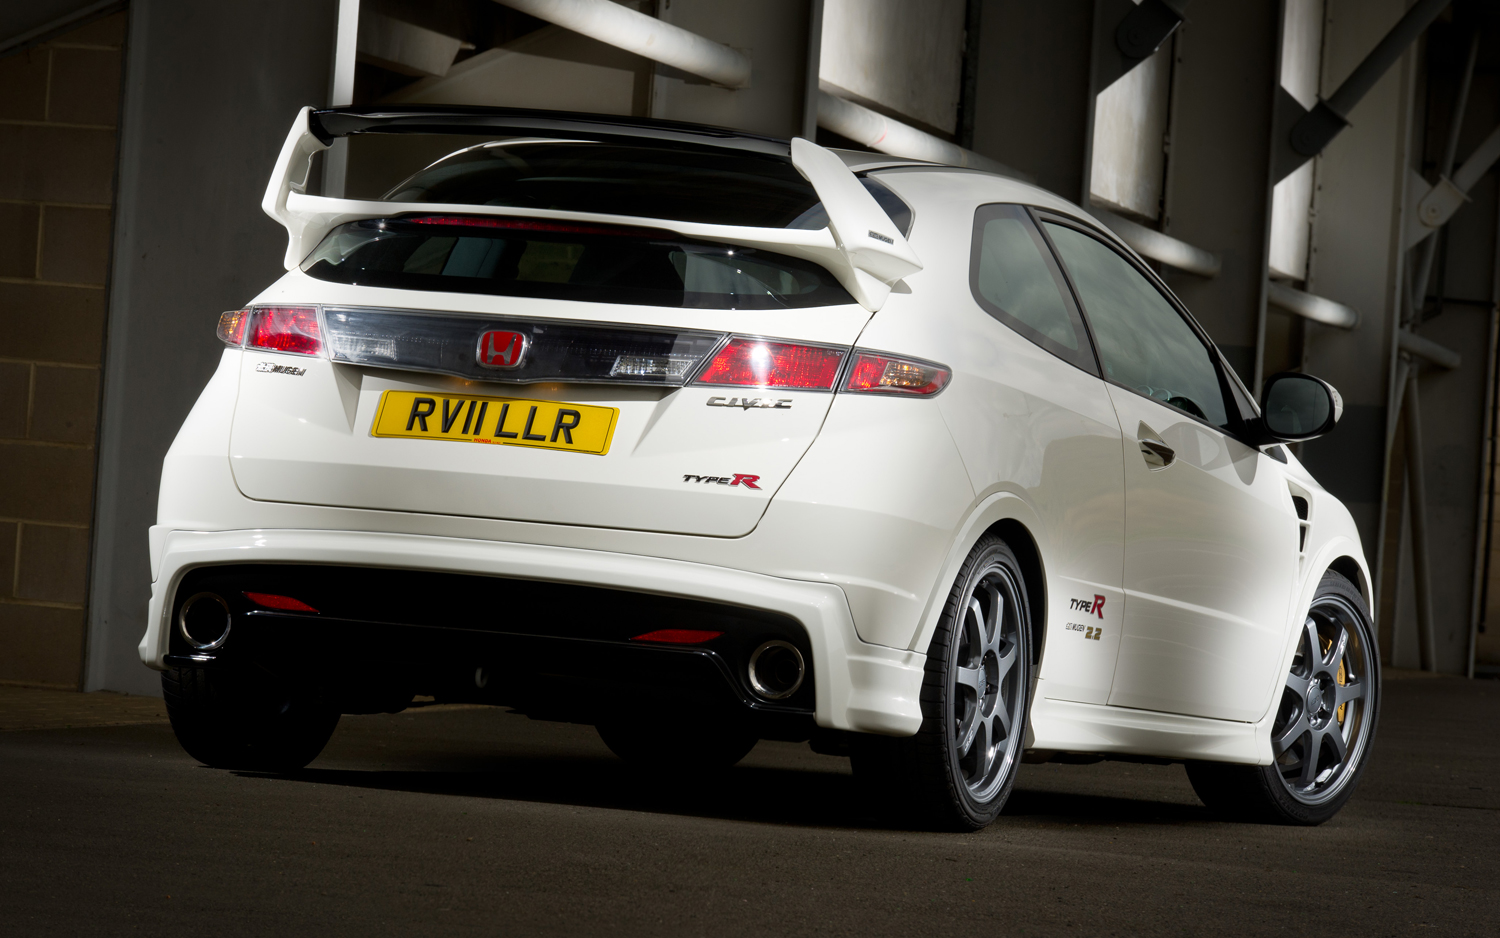 Mugen May Sell 2.2-Liter Honda Civic Type R with 256 HP